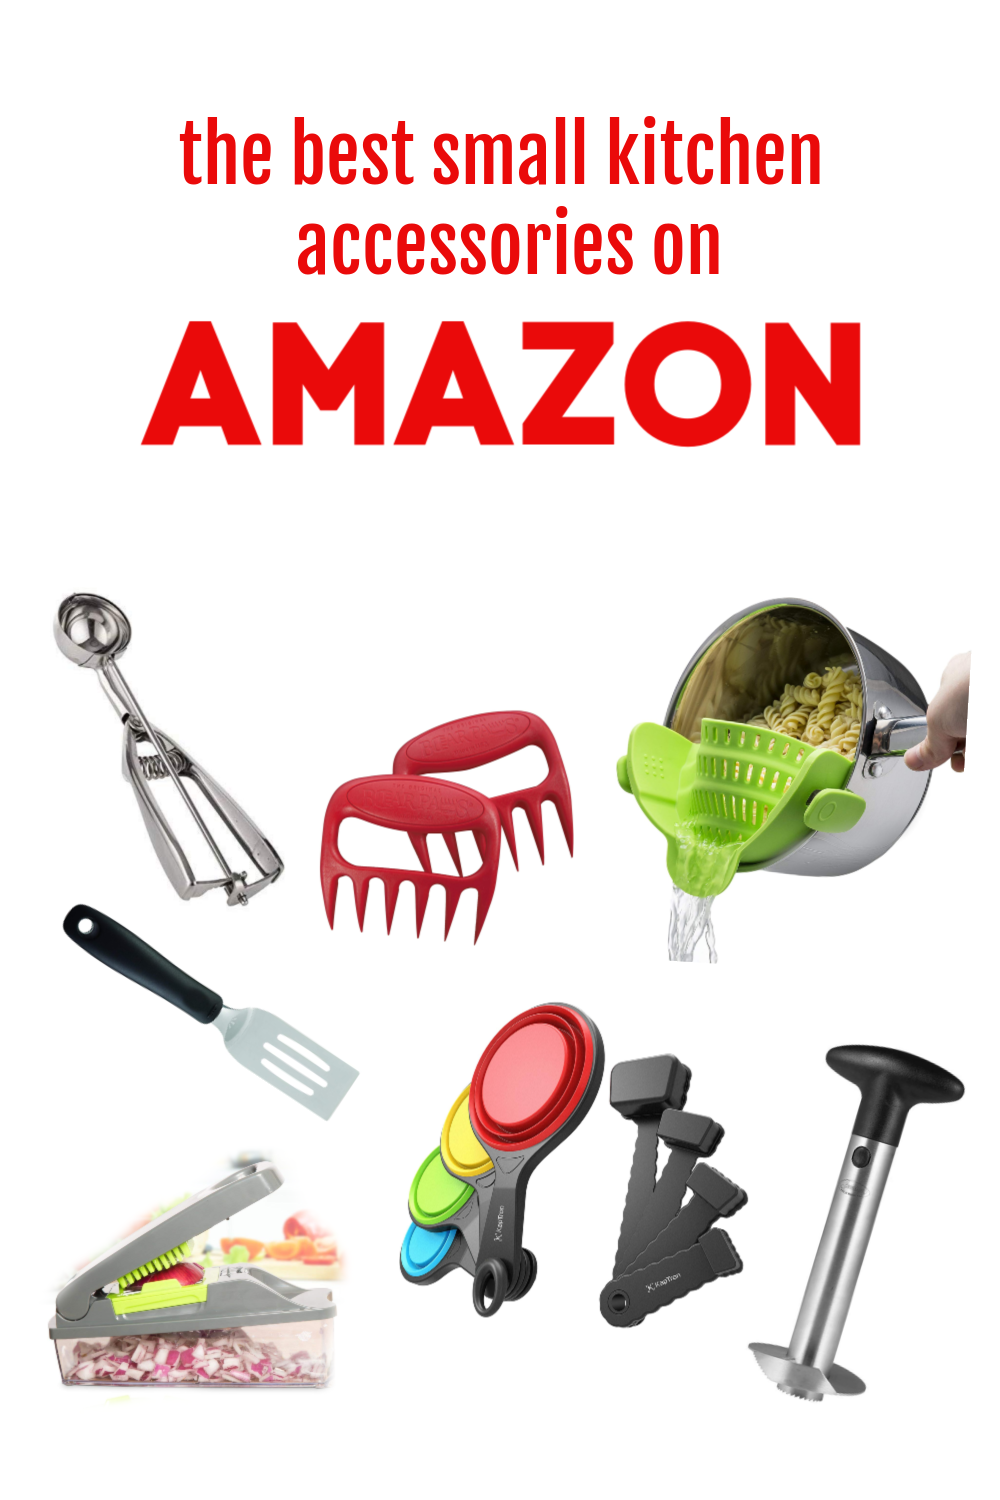 8 of the BEST Small Kitchen Accessories on Amazon